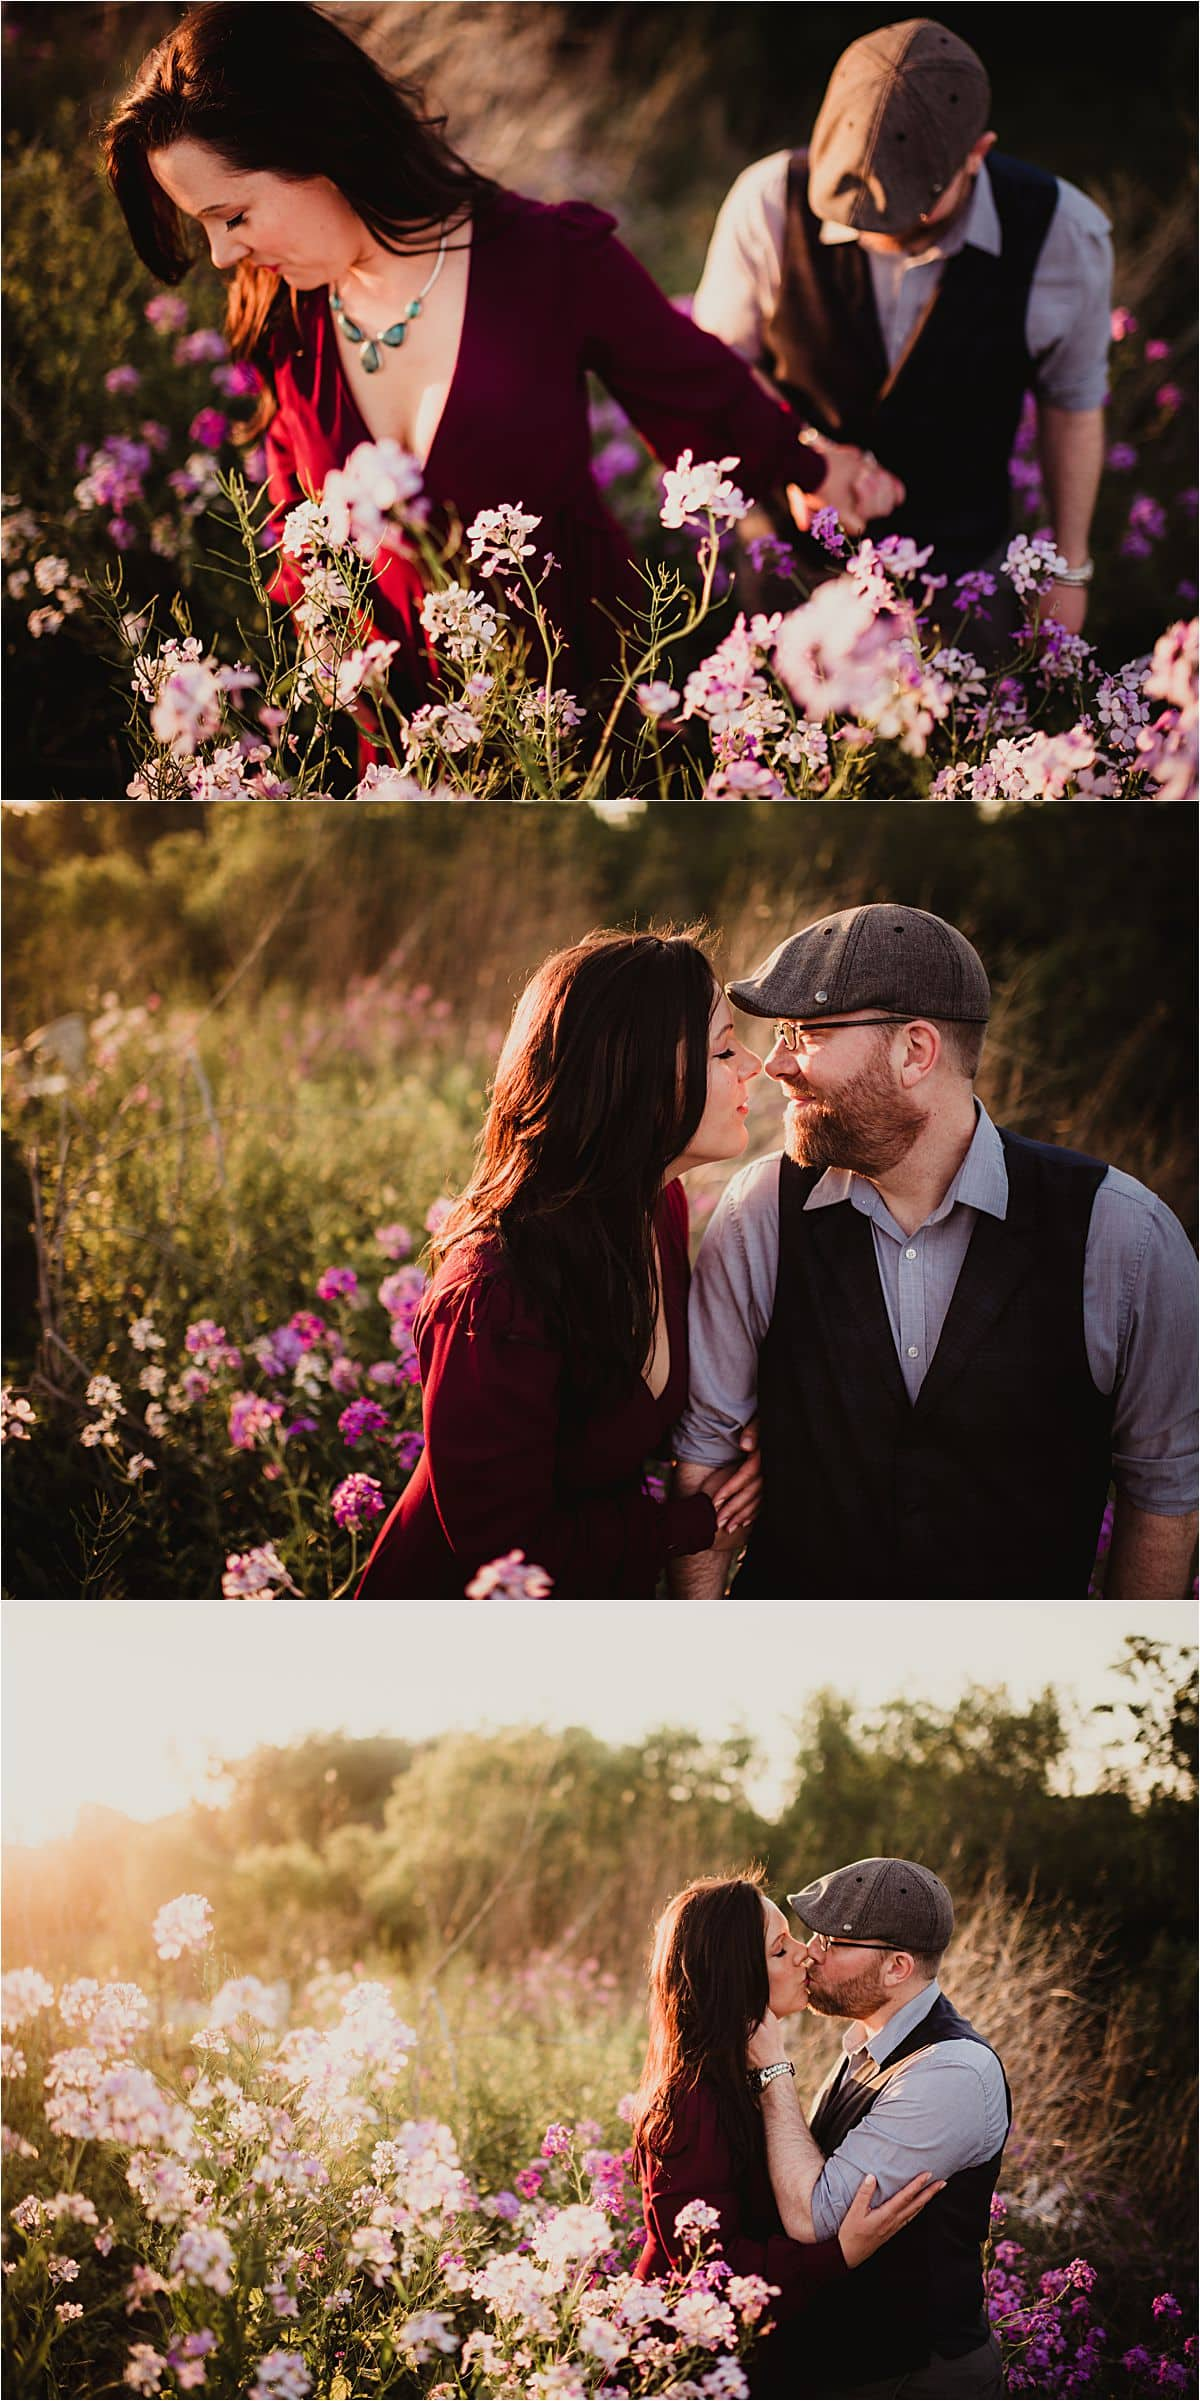 Romantic Summer Engagement Session Close Ups of Couple